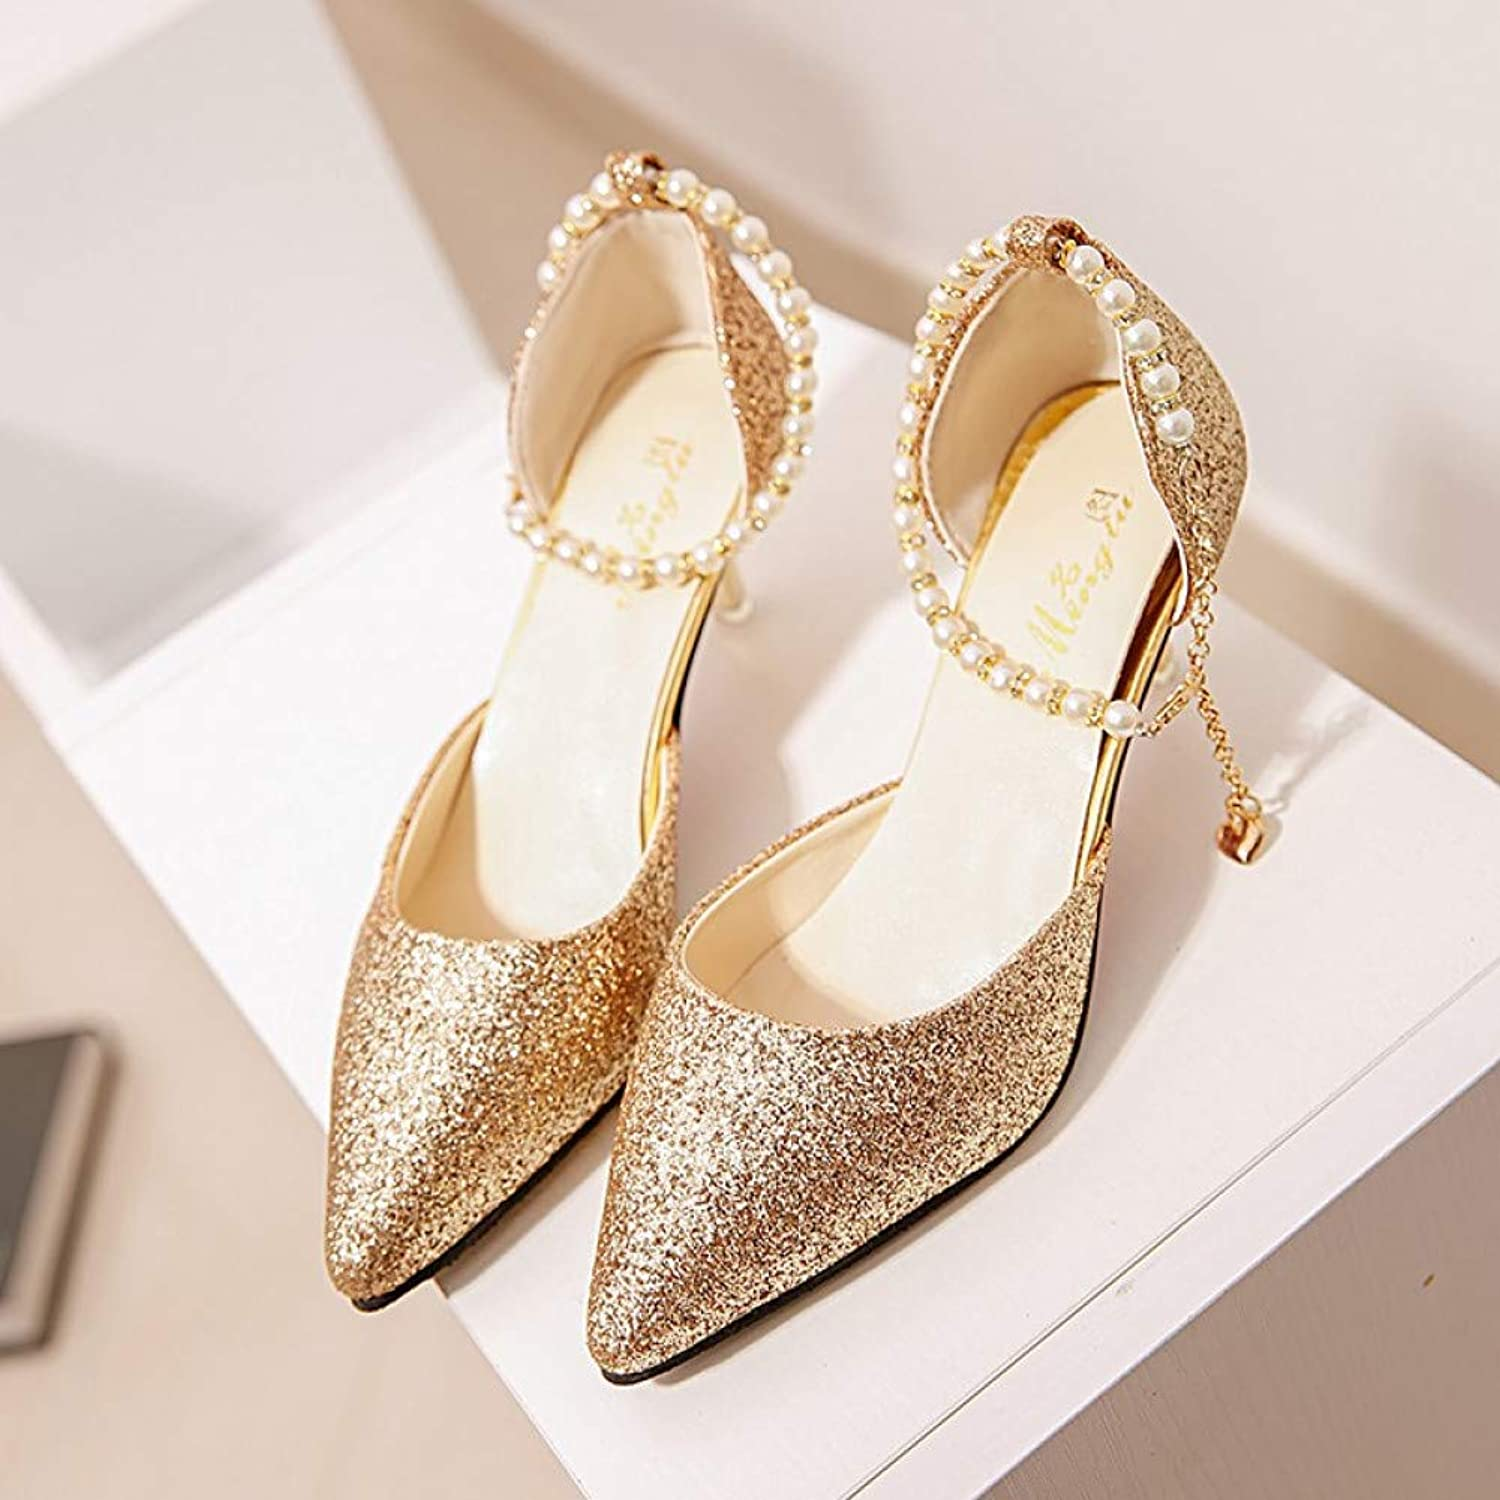 UKJSNHH igh Heels Pointed Toe Pearl High Heels shoes Female Fashion Hollow with Sandals of The Thin Breathable shoes Women Pumps